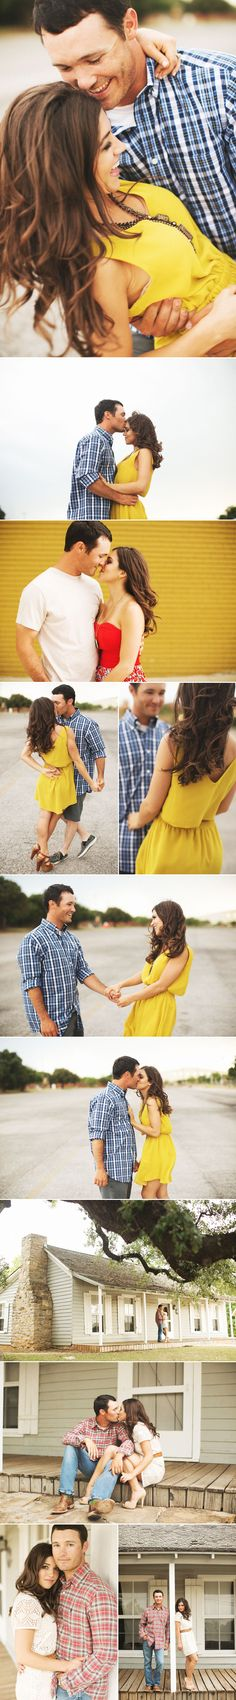 Love this engagement shoot!  save the date invite, dancing. 1st- her back 2nd-  both looking forward 3rd- him dipping her